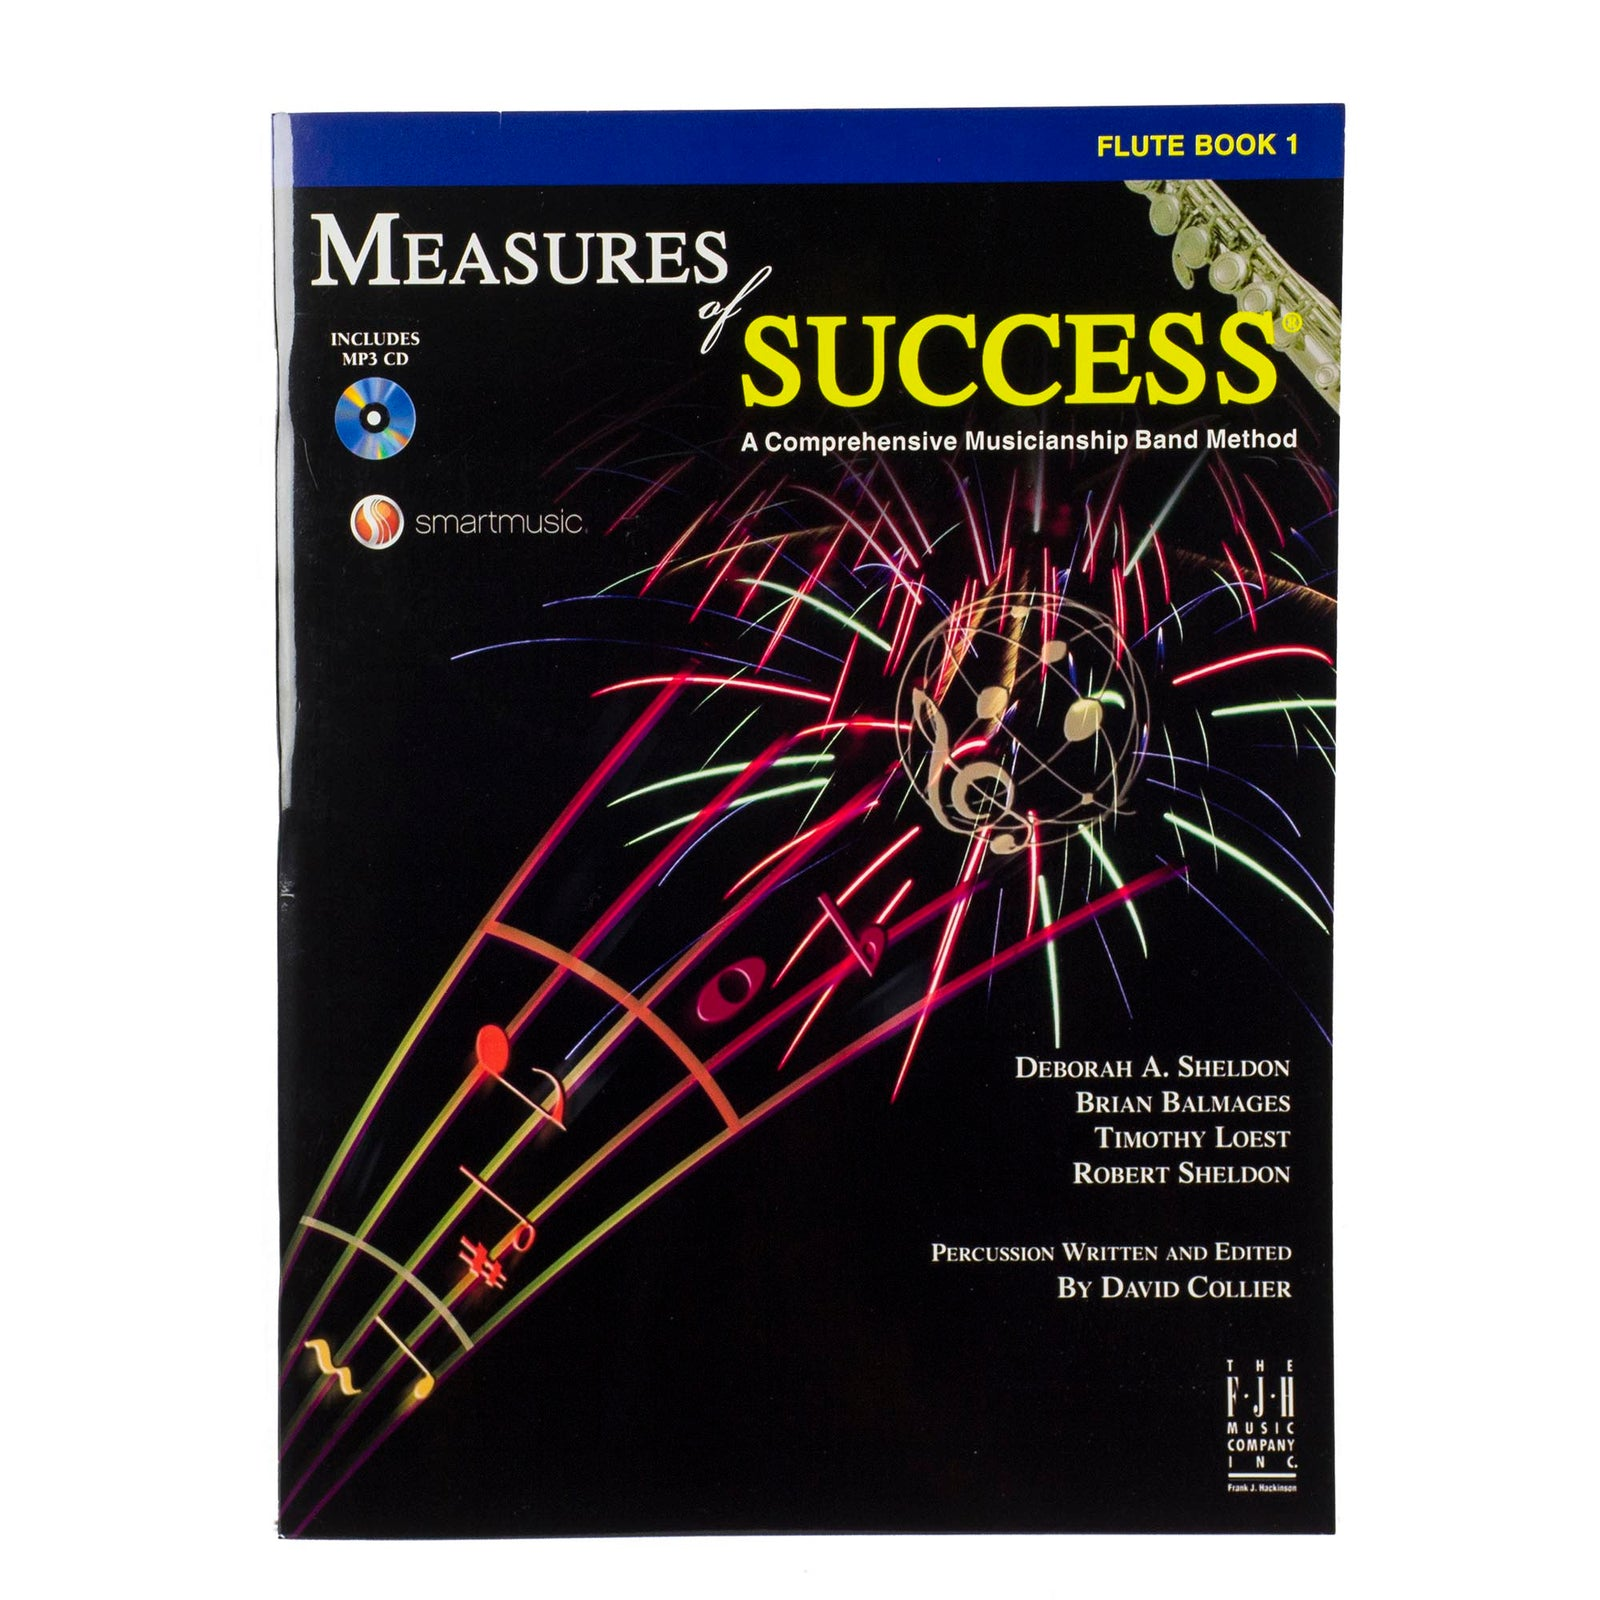 Measures Of Success - Flute Book 1